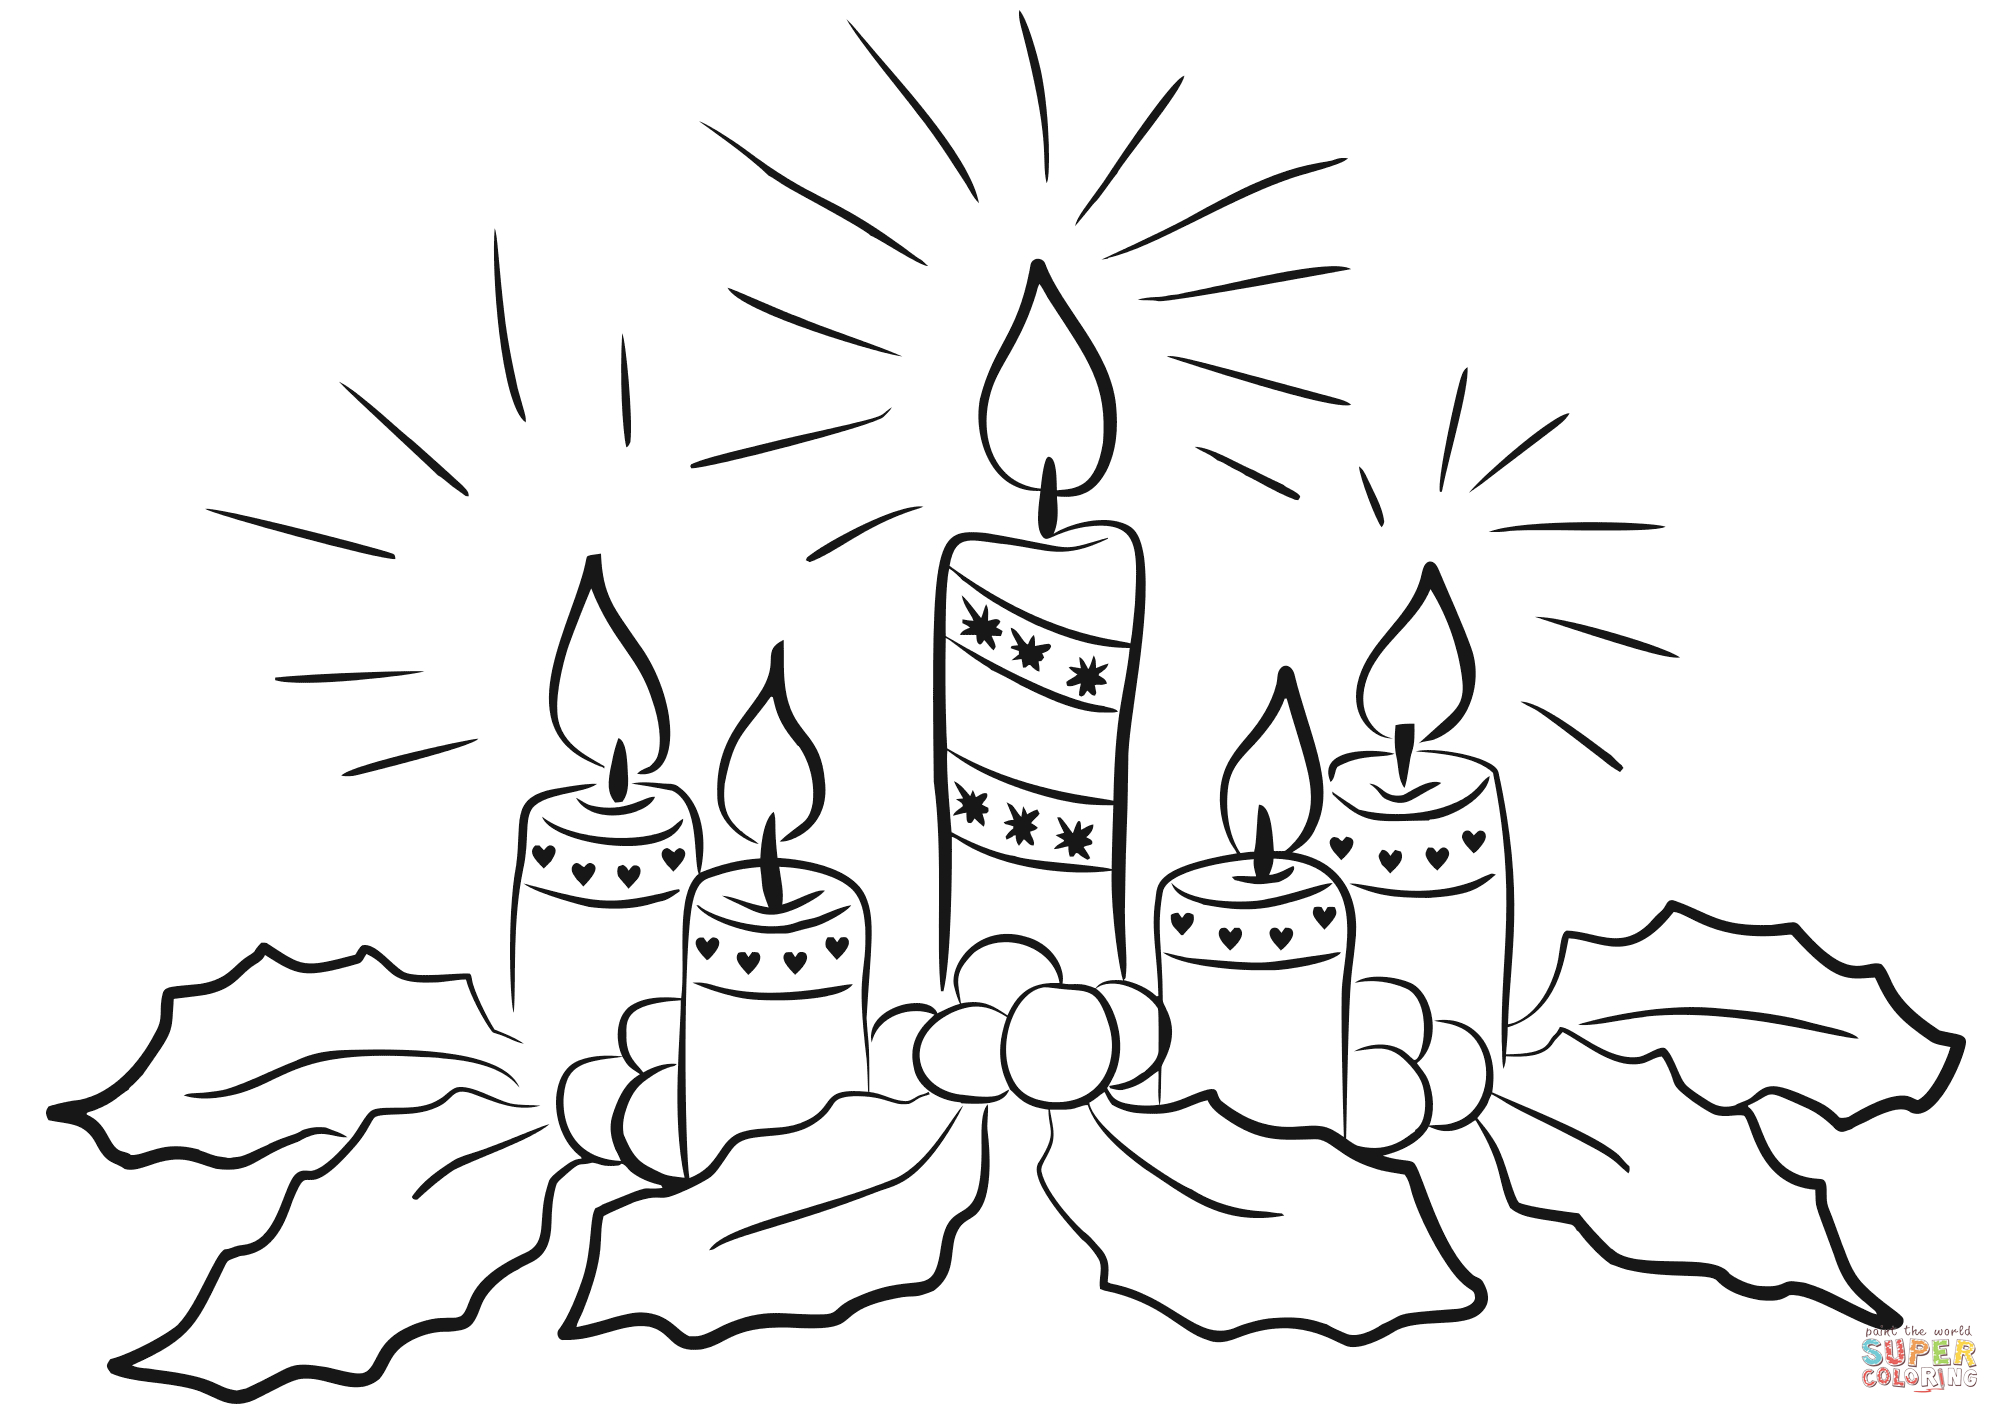 Advent Candles Coloring Page | Free Printable Coloring Pages - Free Printable Advent Wreath